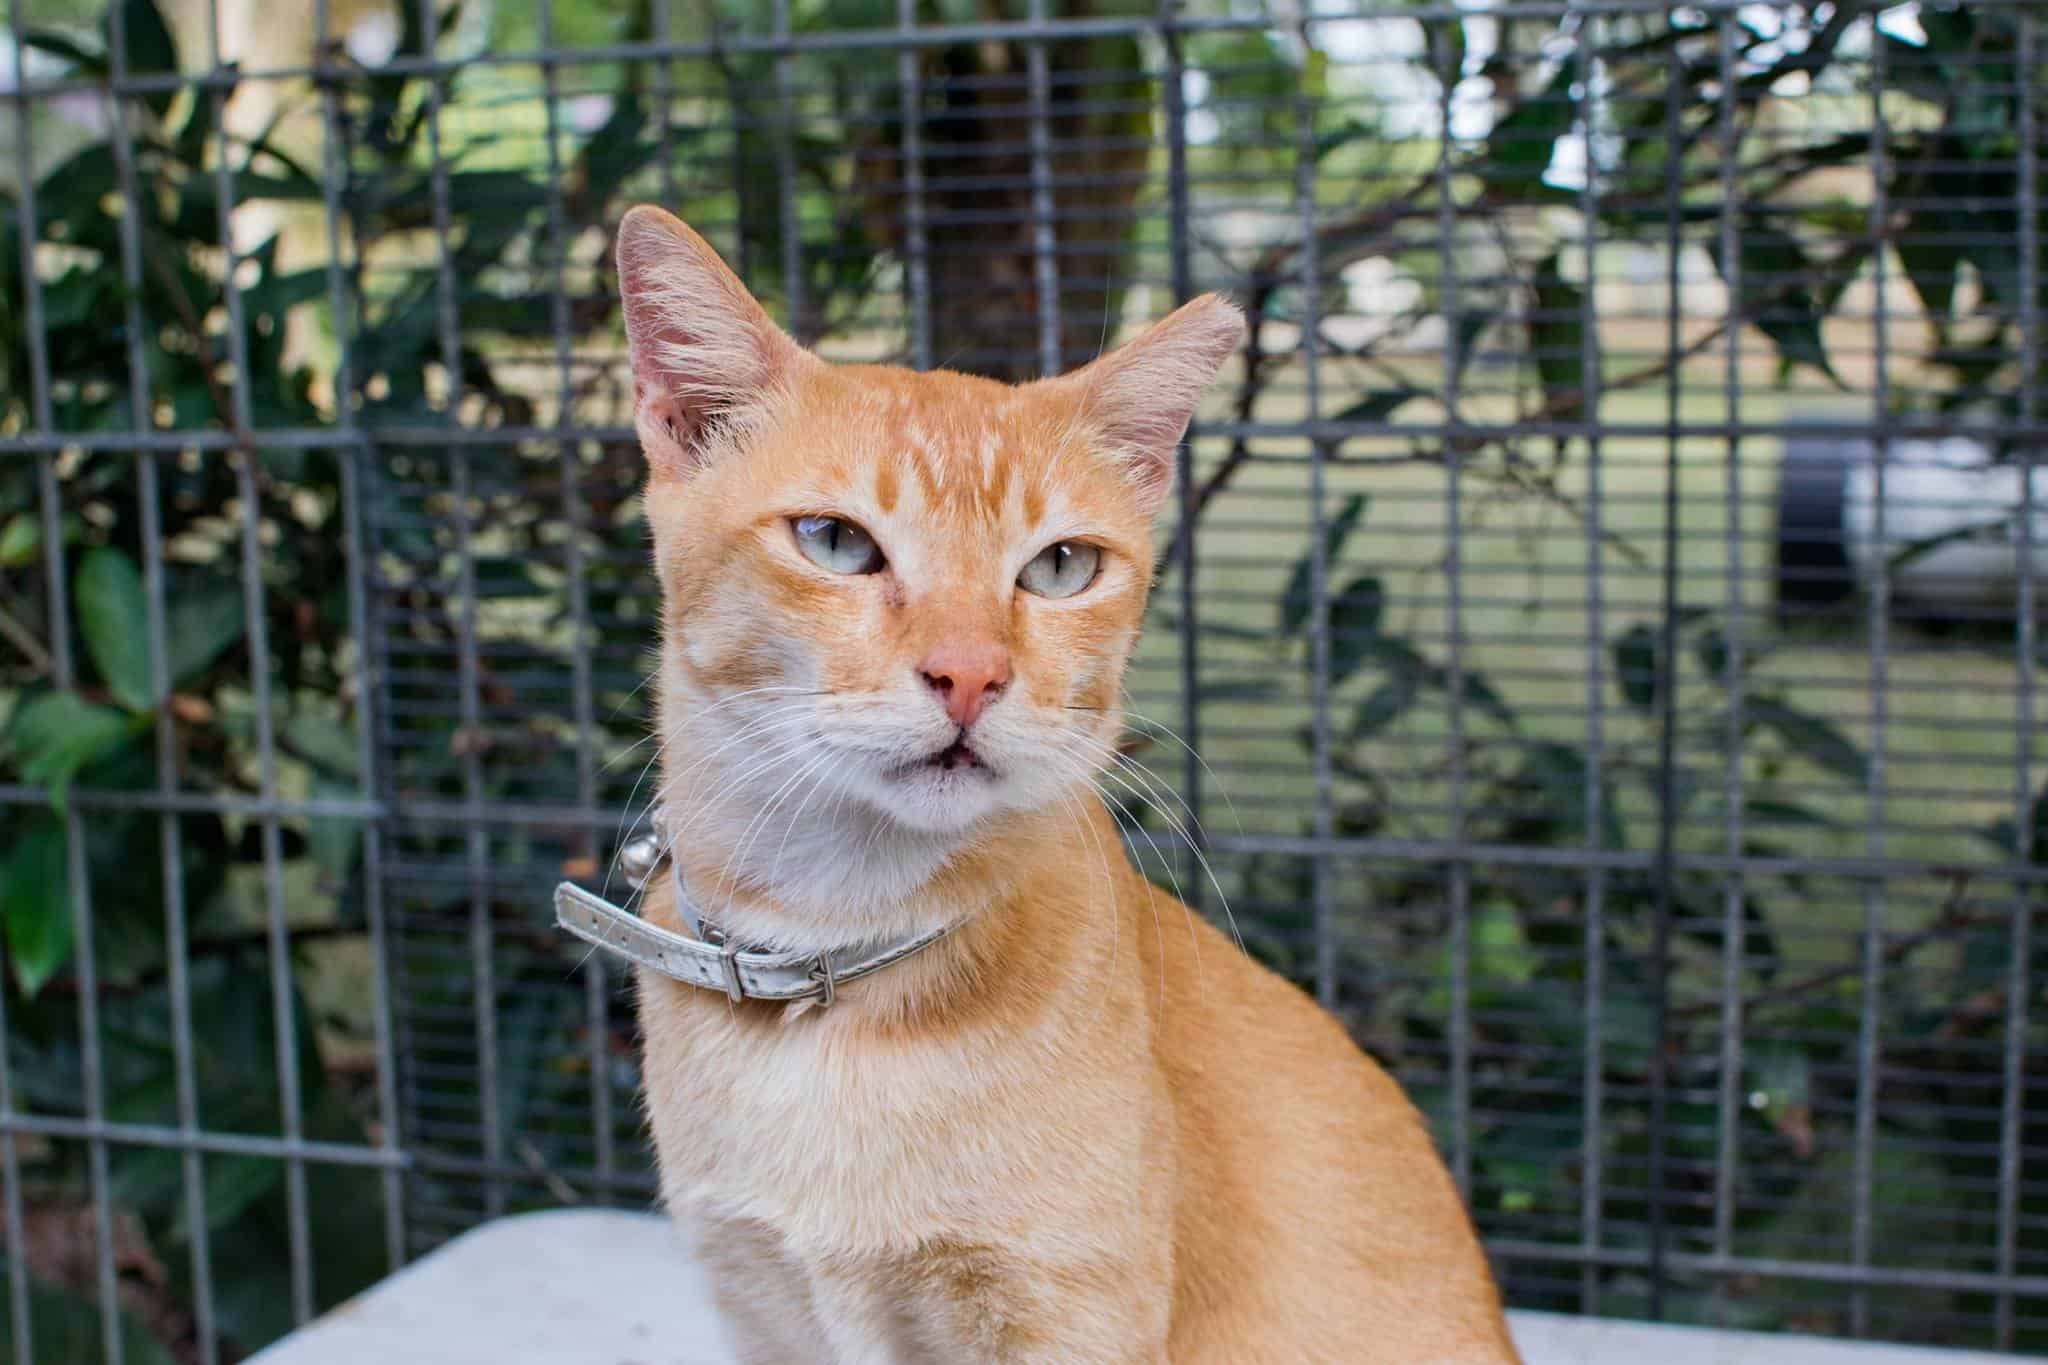 Rescued orange cat with collar in Singapore